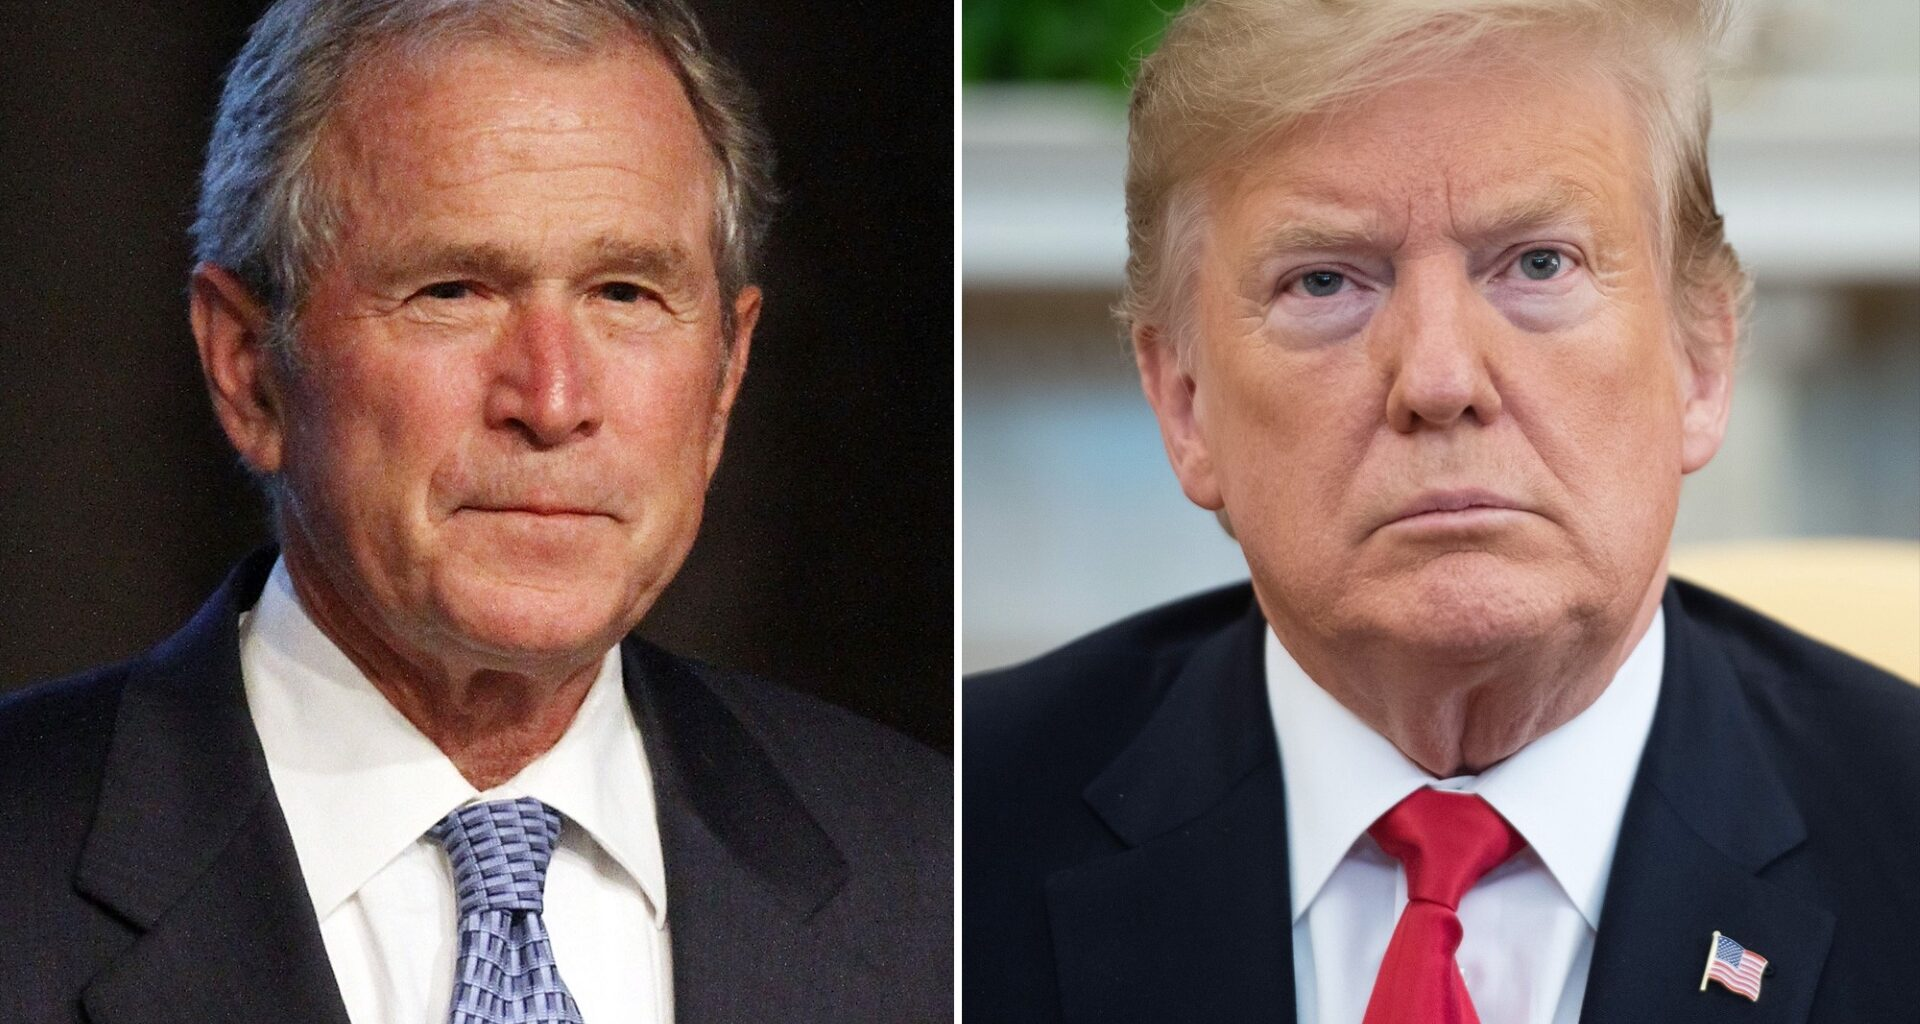 George Bush and Donald Trump